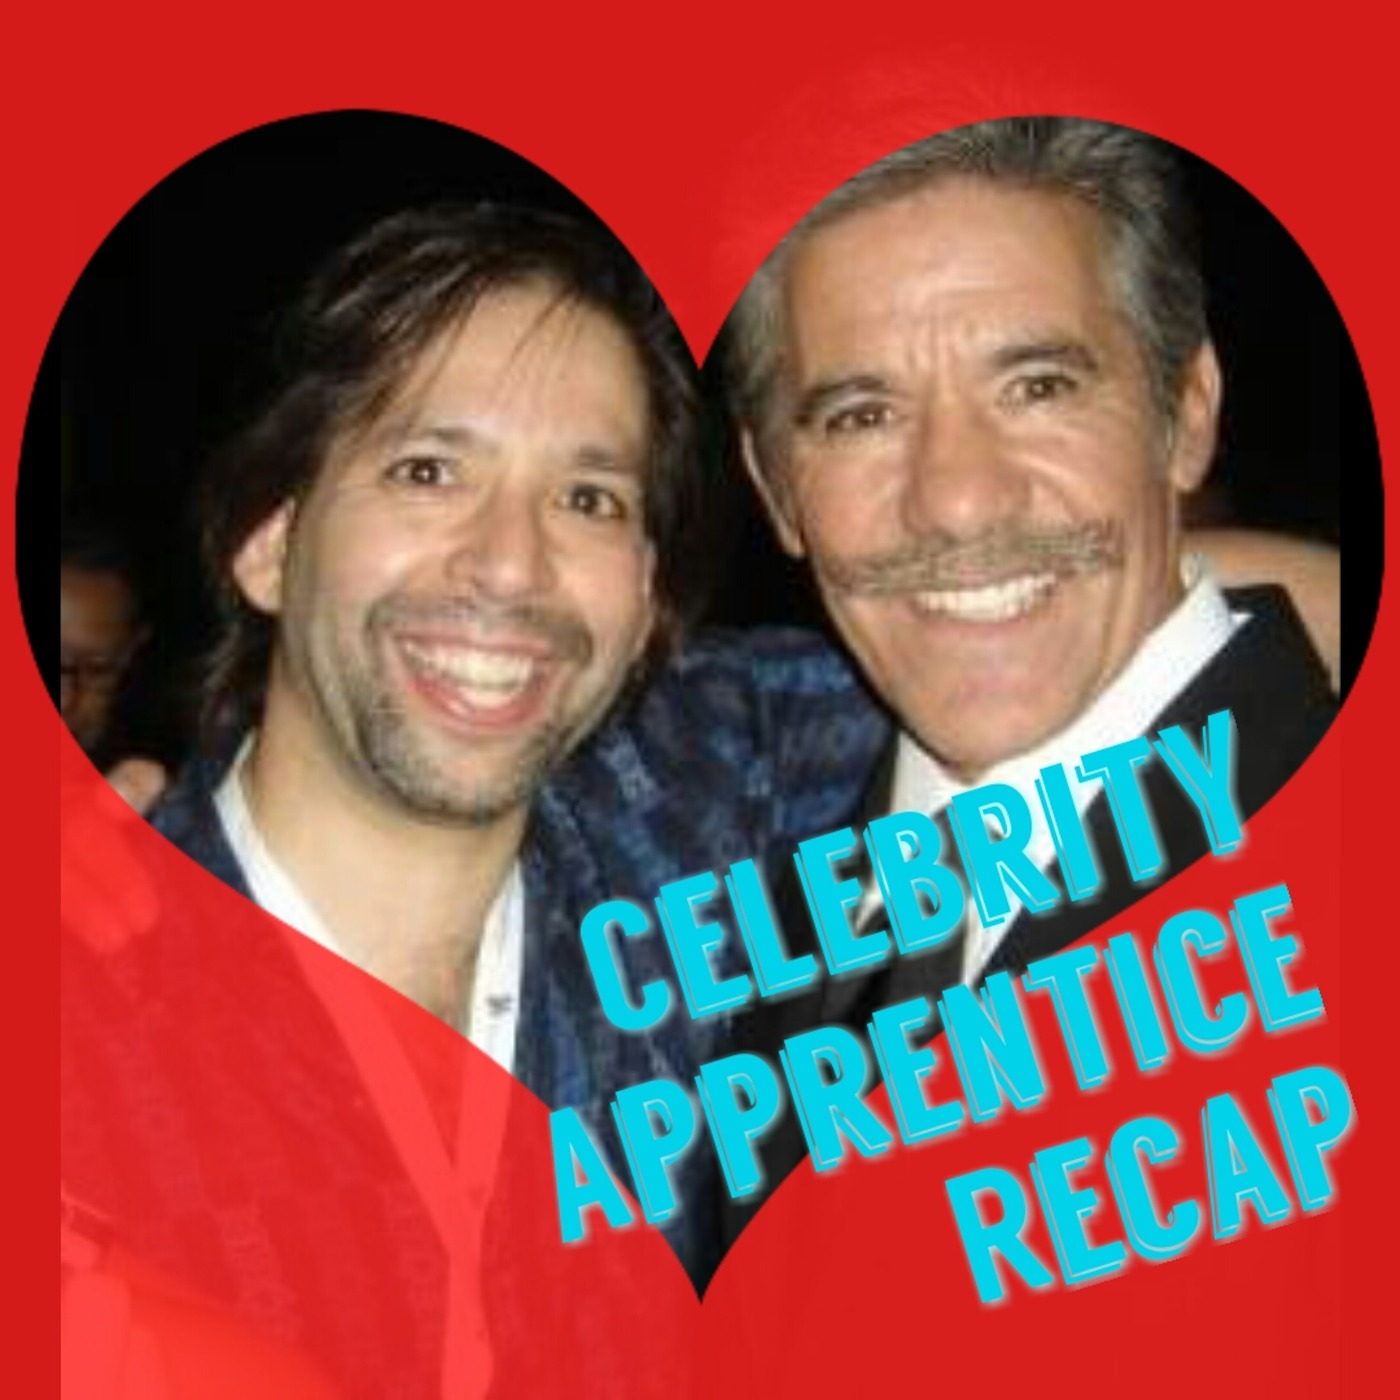 Celebrity Apprentice Recap's Podcast